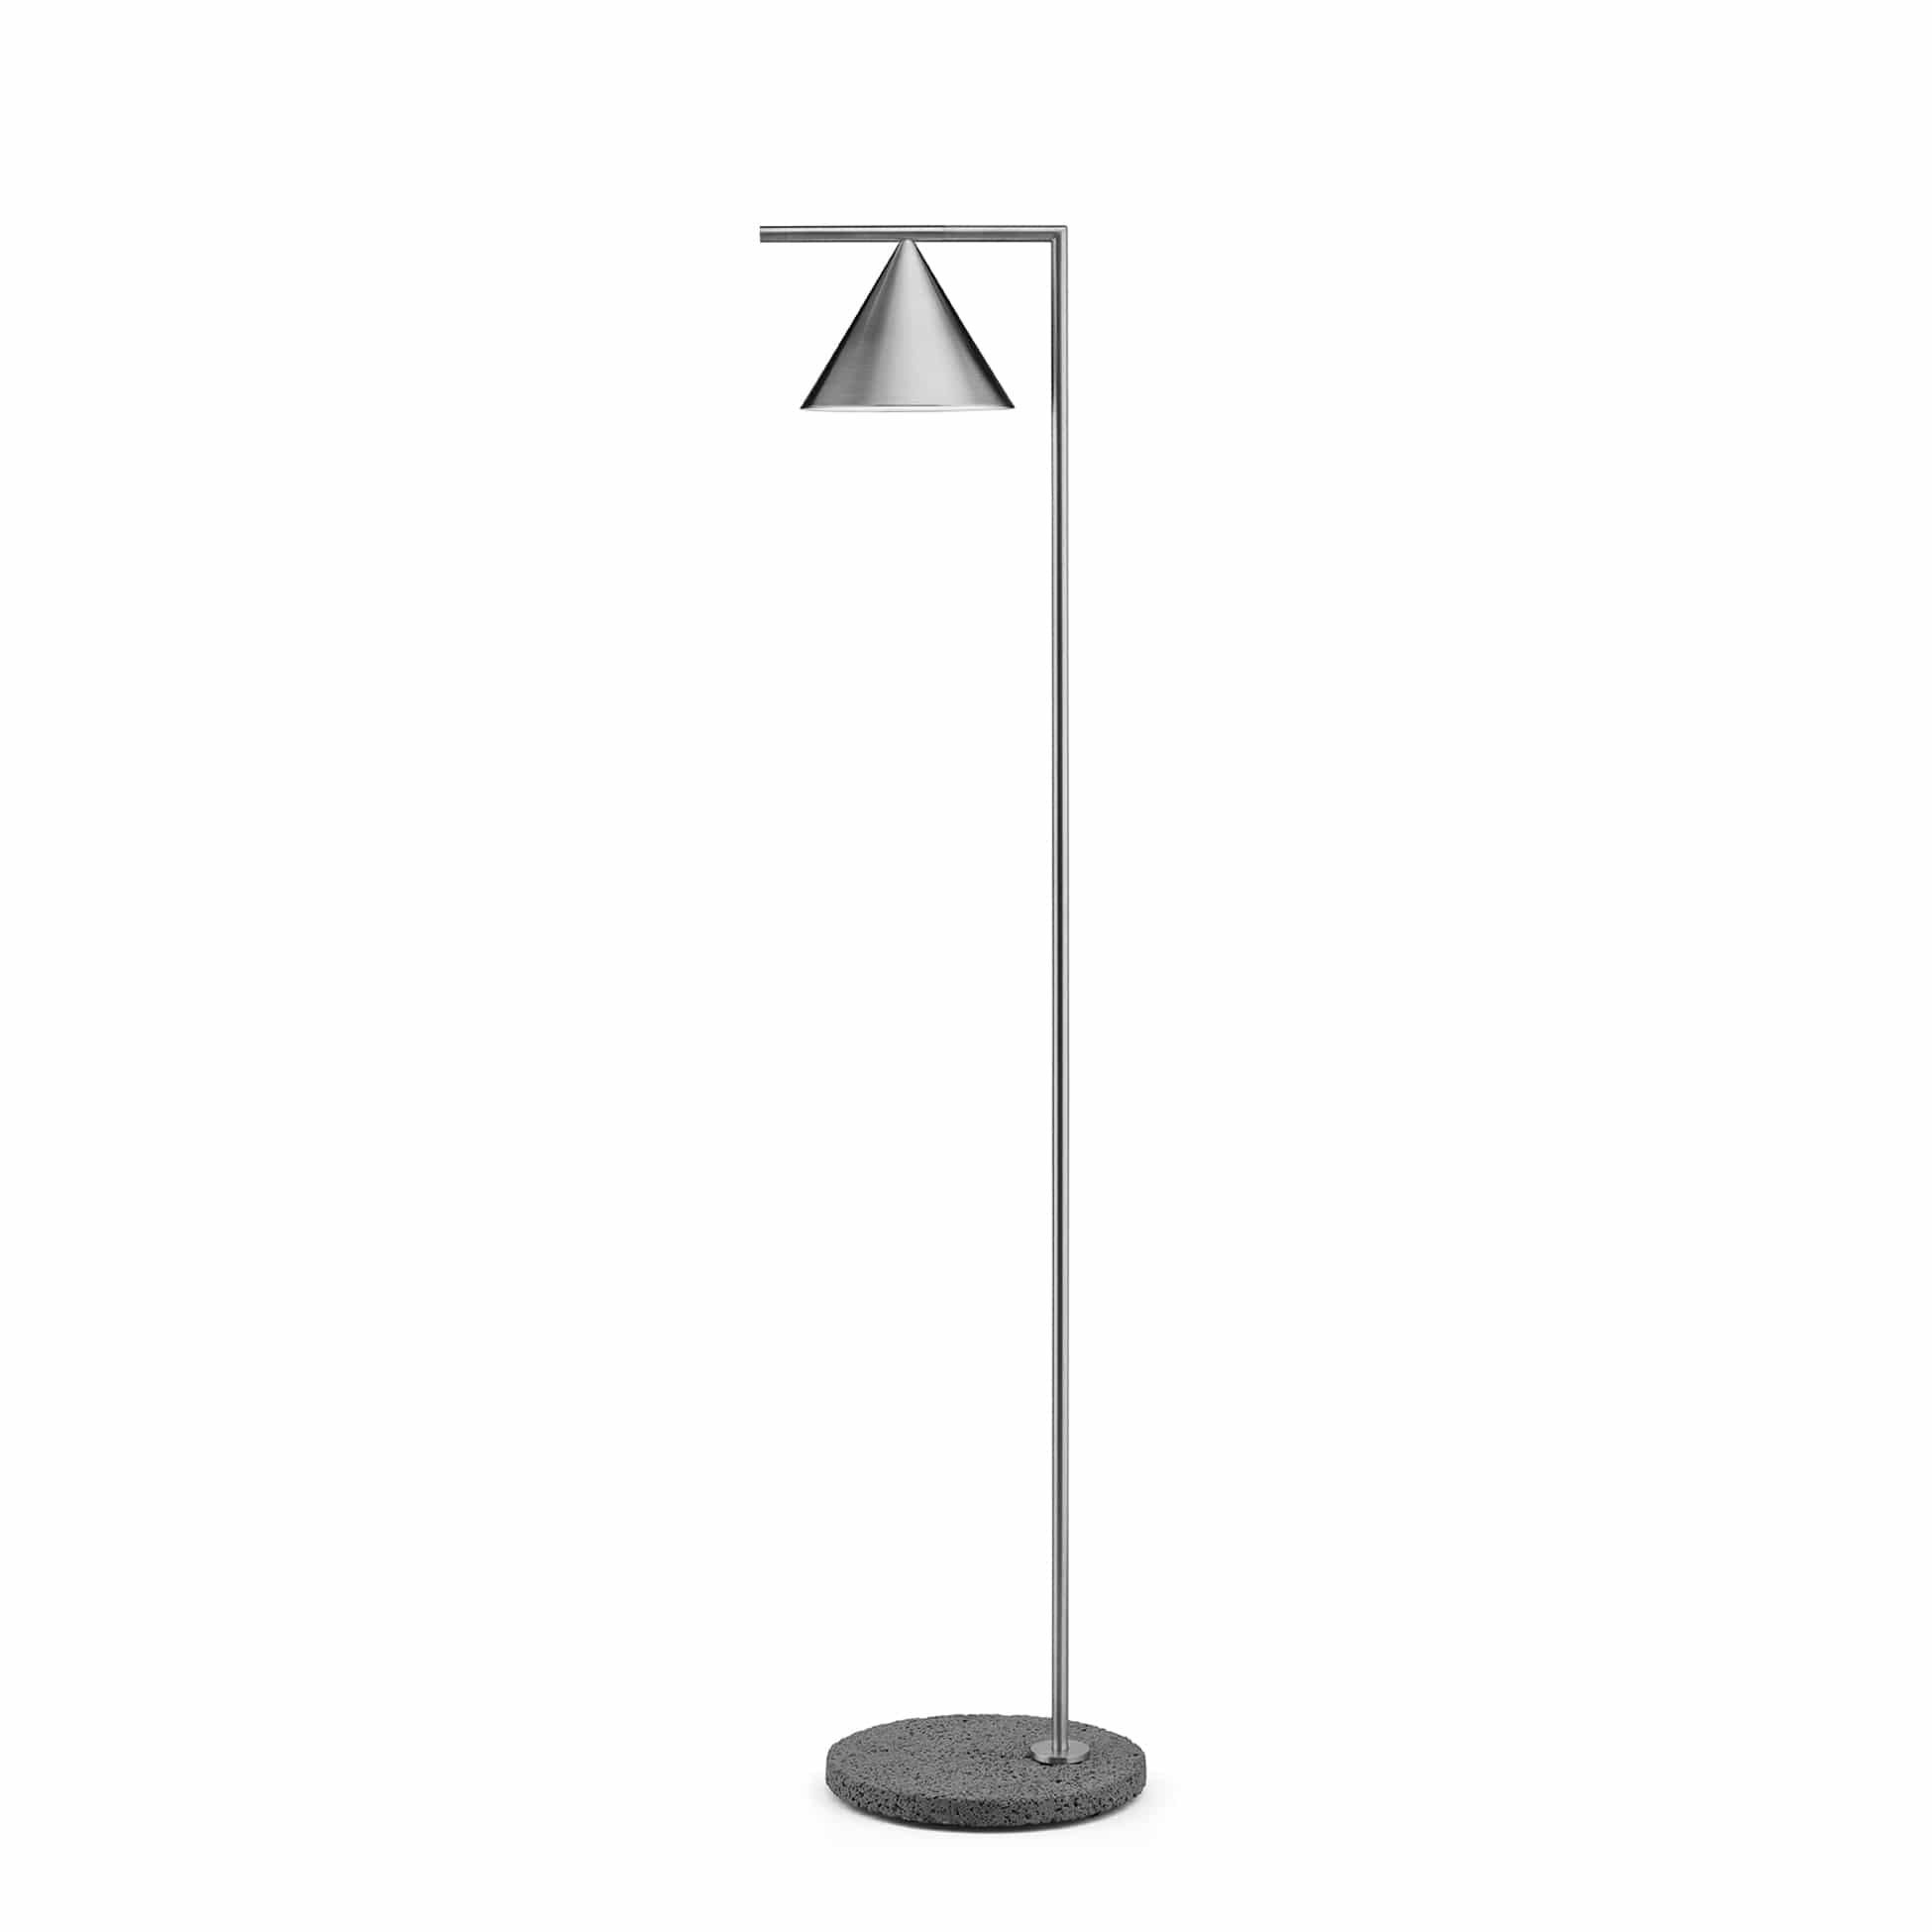 Flos Captain Flint brushed stainless steel - occhio di Pernice